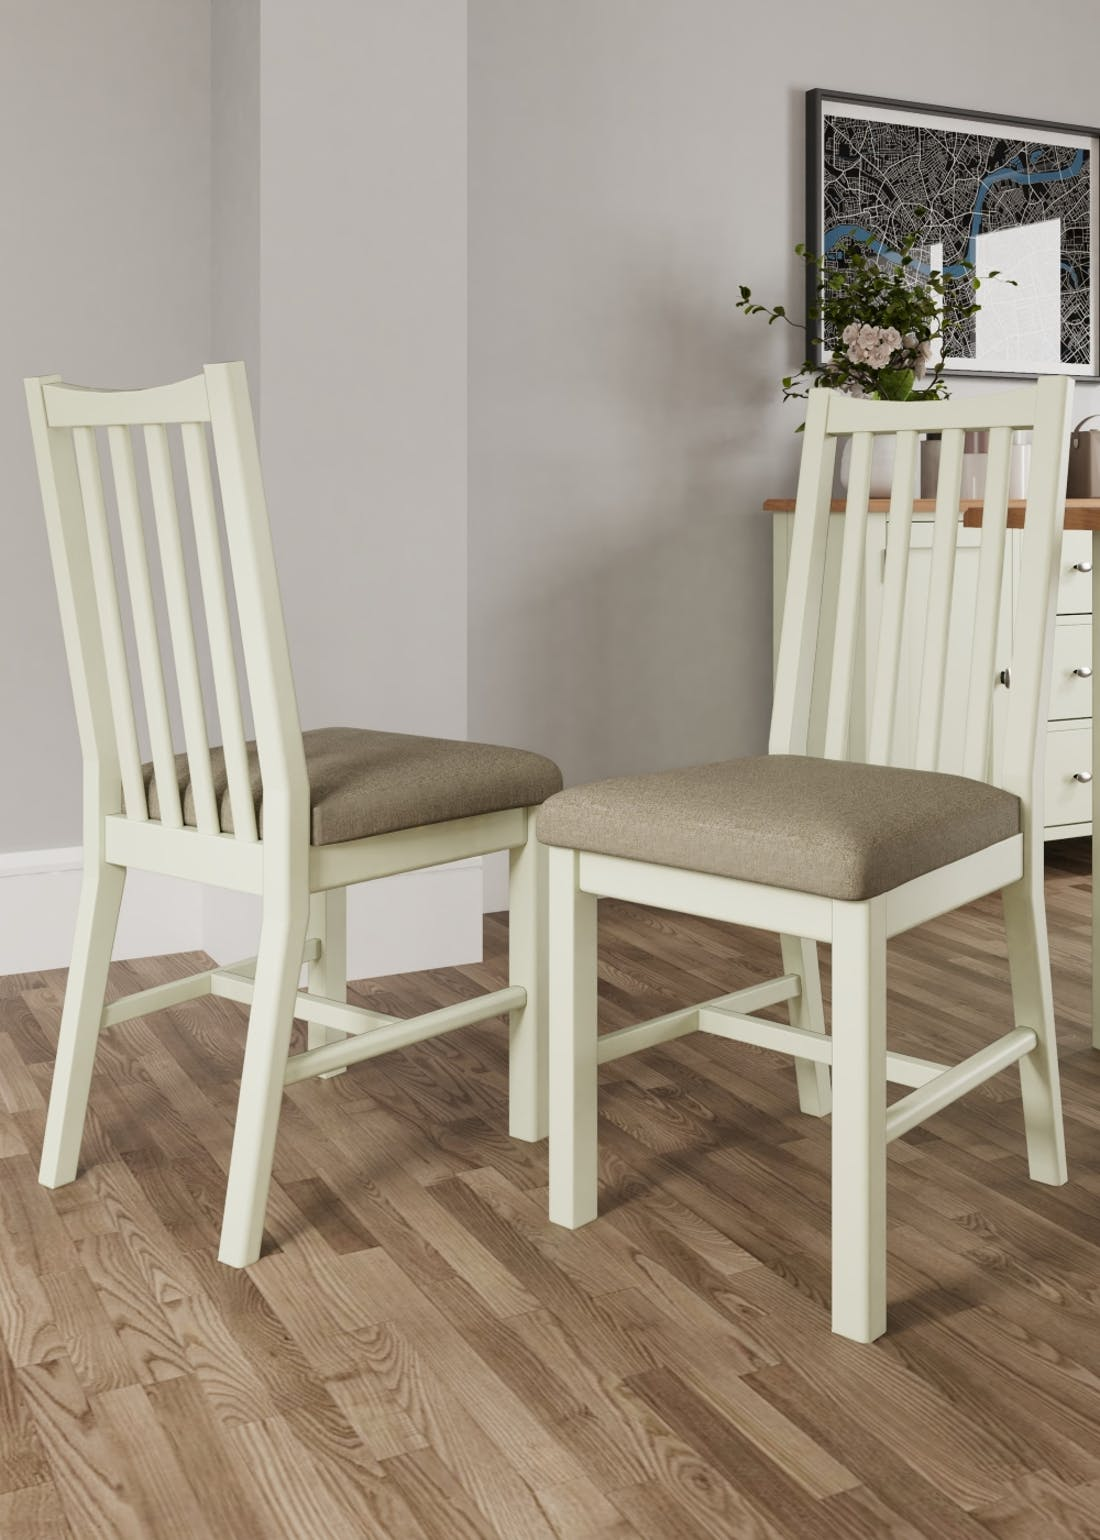 Interiors Direct 2 Pack Grayson Dining Chairs (91cm x 42cm x 39cm)